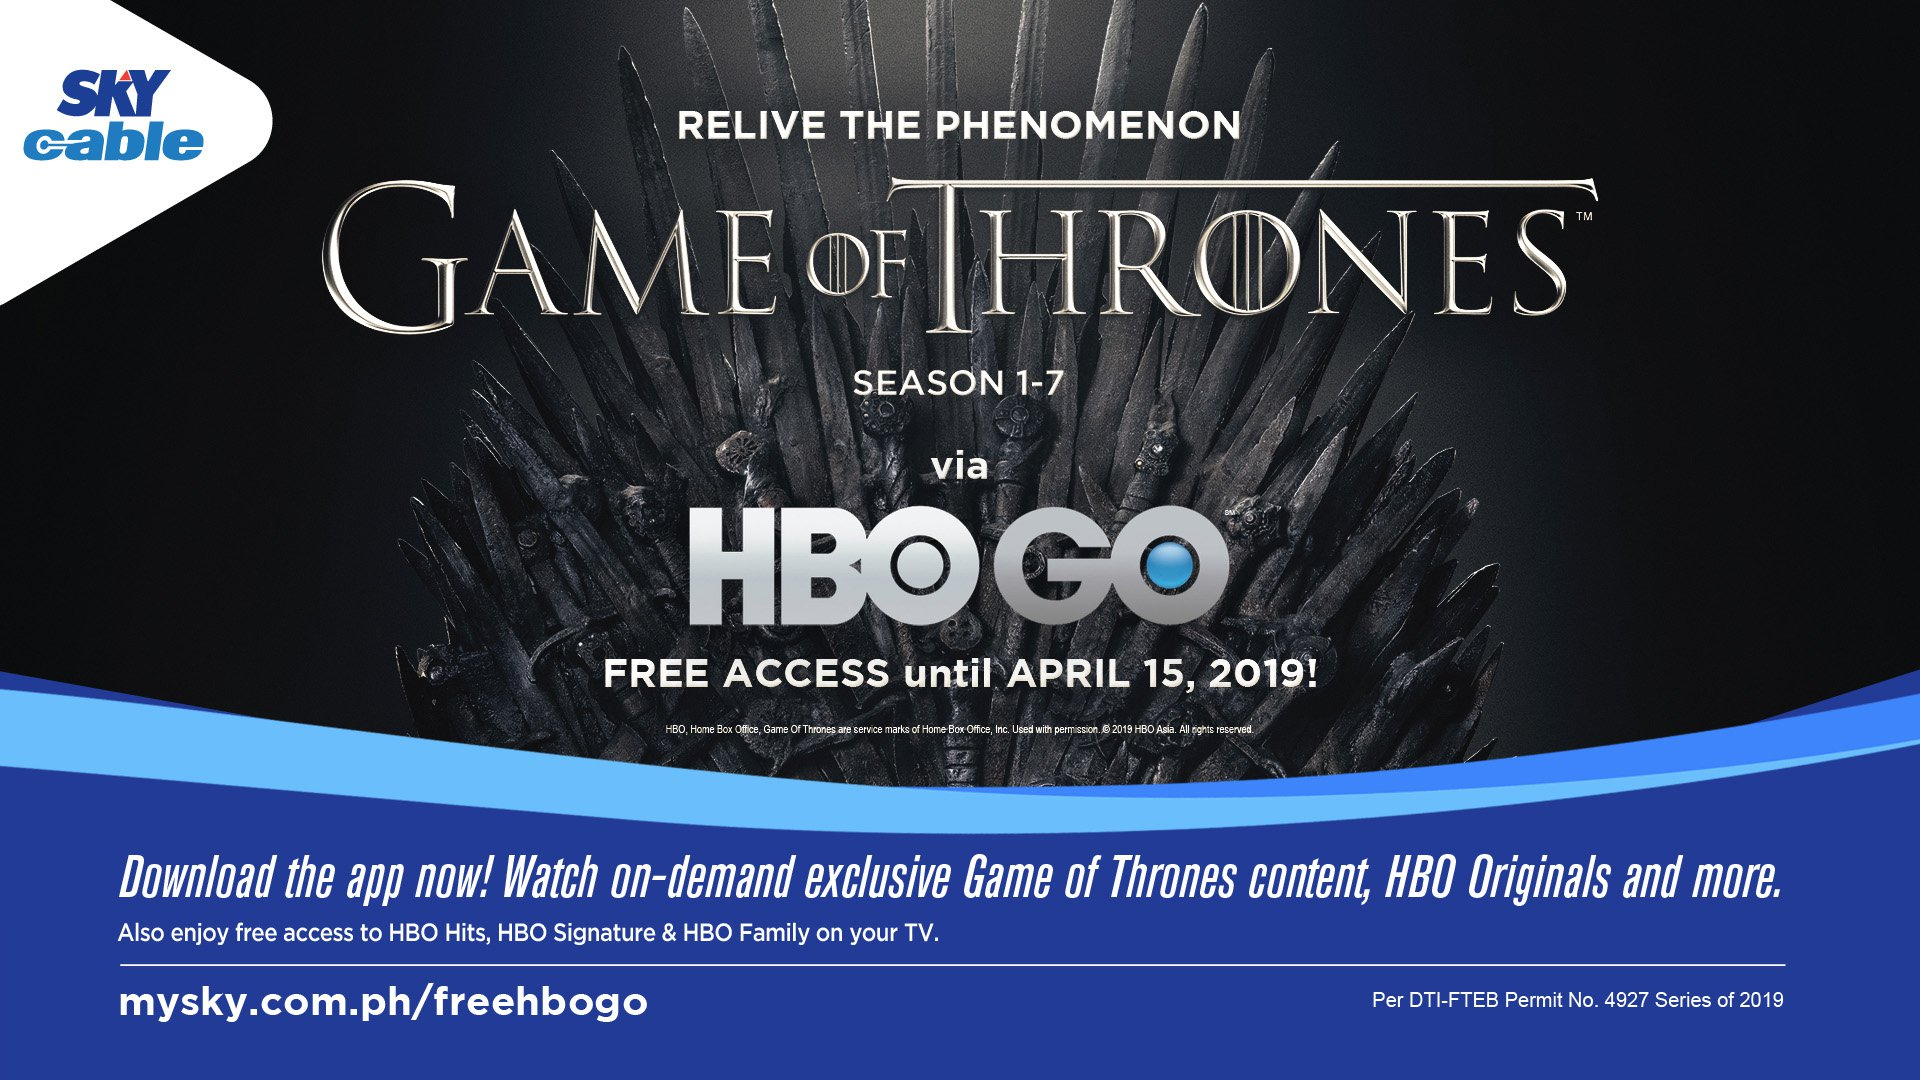 Catch up on 'Game of Thrones' via HBO GO on SKY